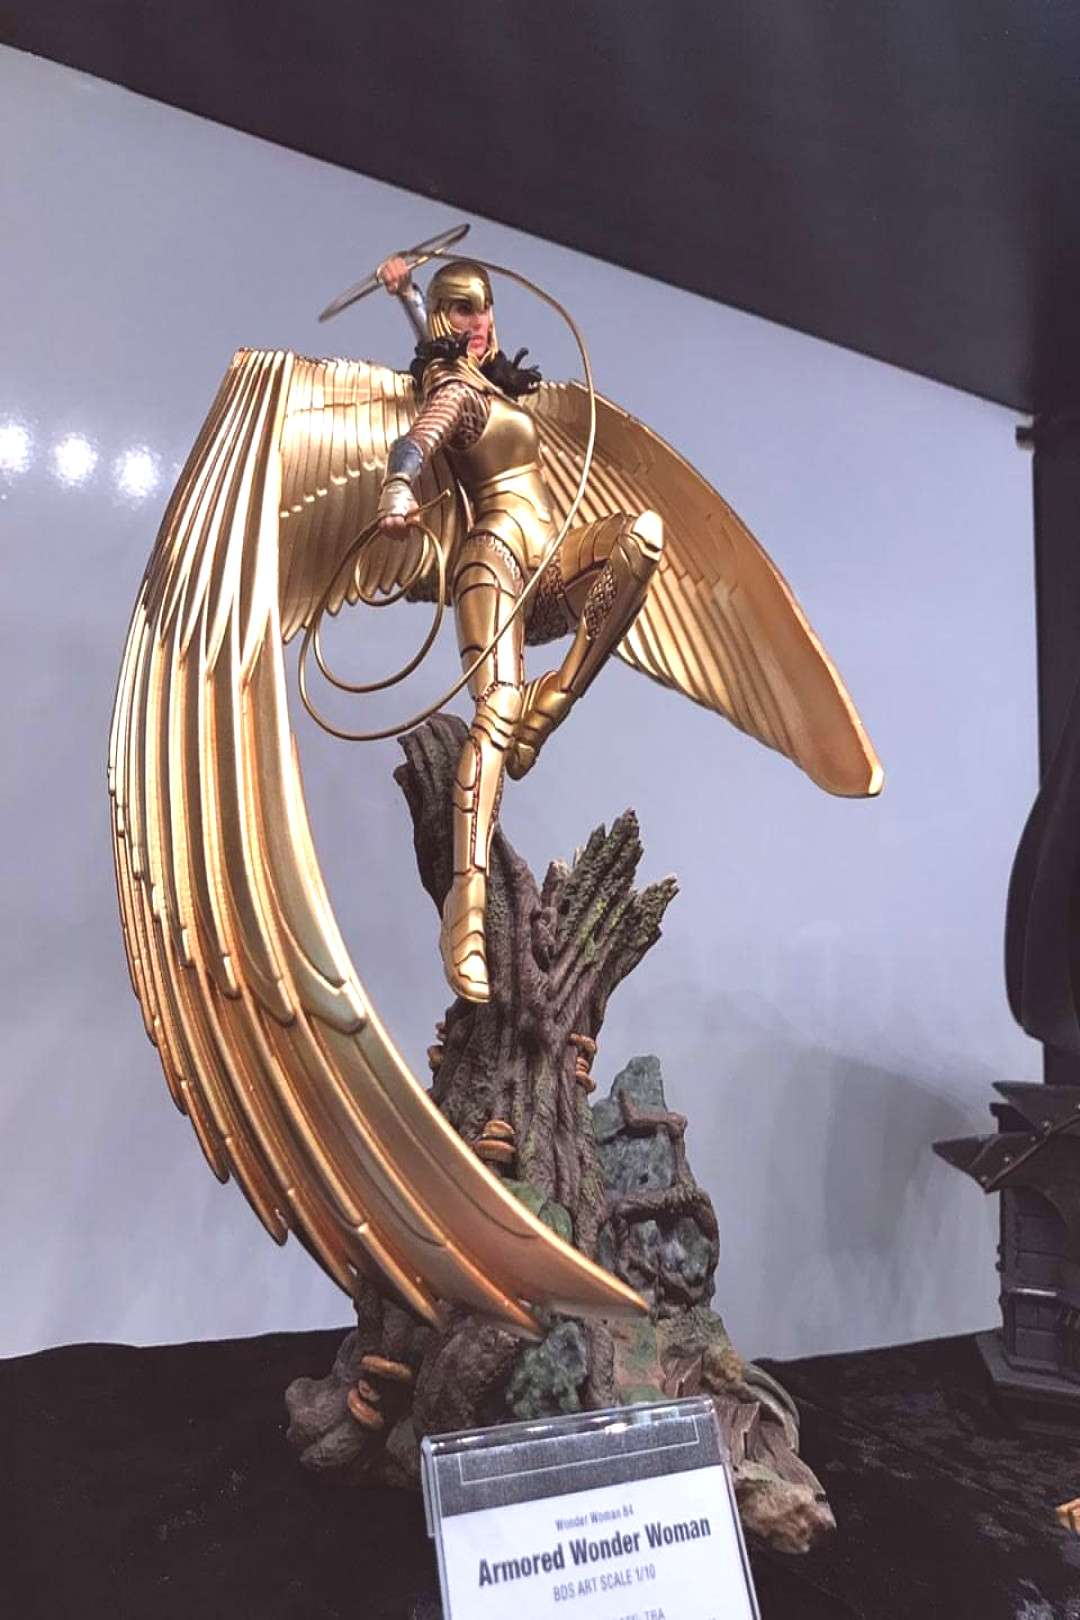 [NEW YORK TOY FAIR] New Pics!!! Armored Wonder Woman 84 by *Art S